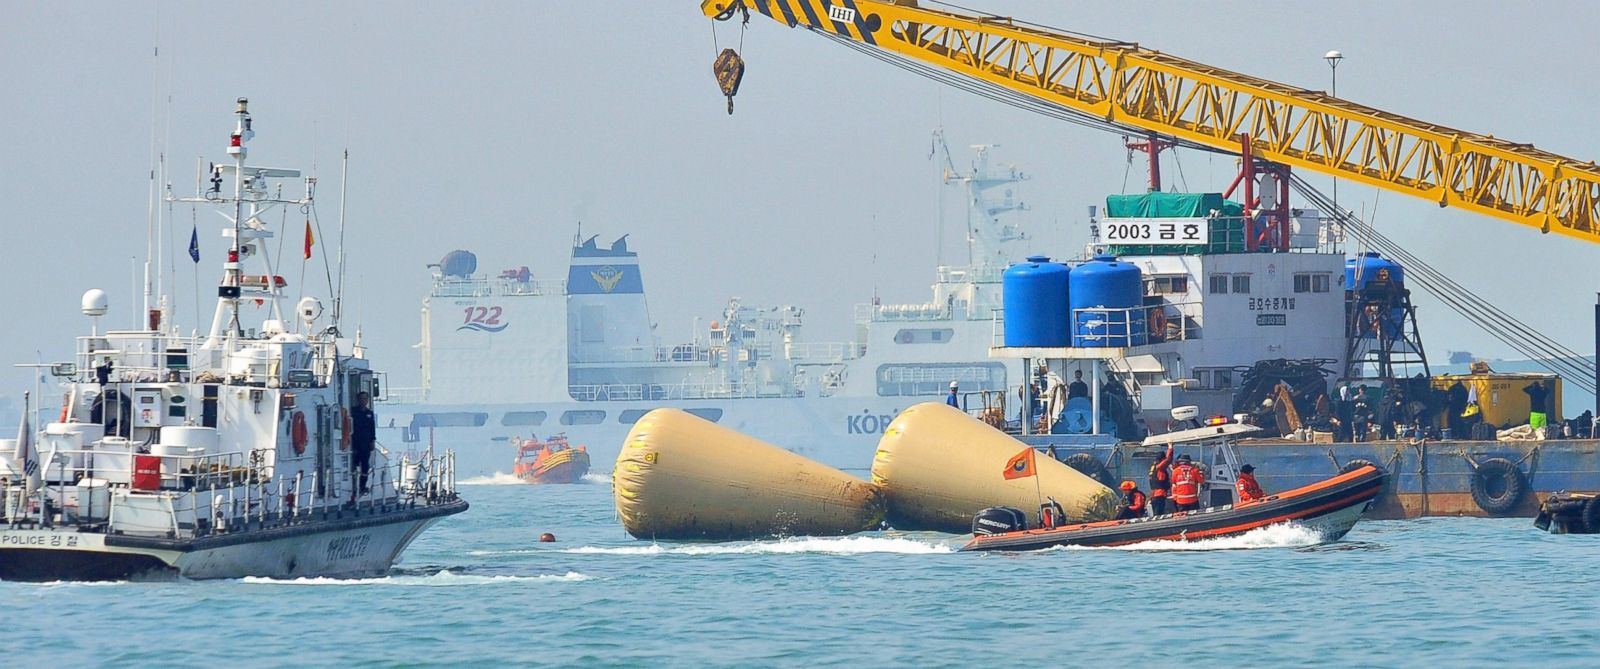 PHOTO: South Korean rescue teams take part in recovery operations at the site of the sunken Sewol ferry, marked with buoys, off the coast of the South Korean island of Jindo, April 23, 2014.